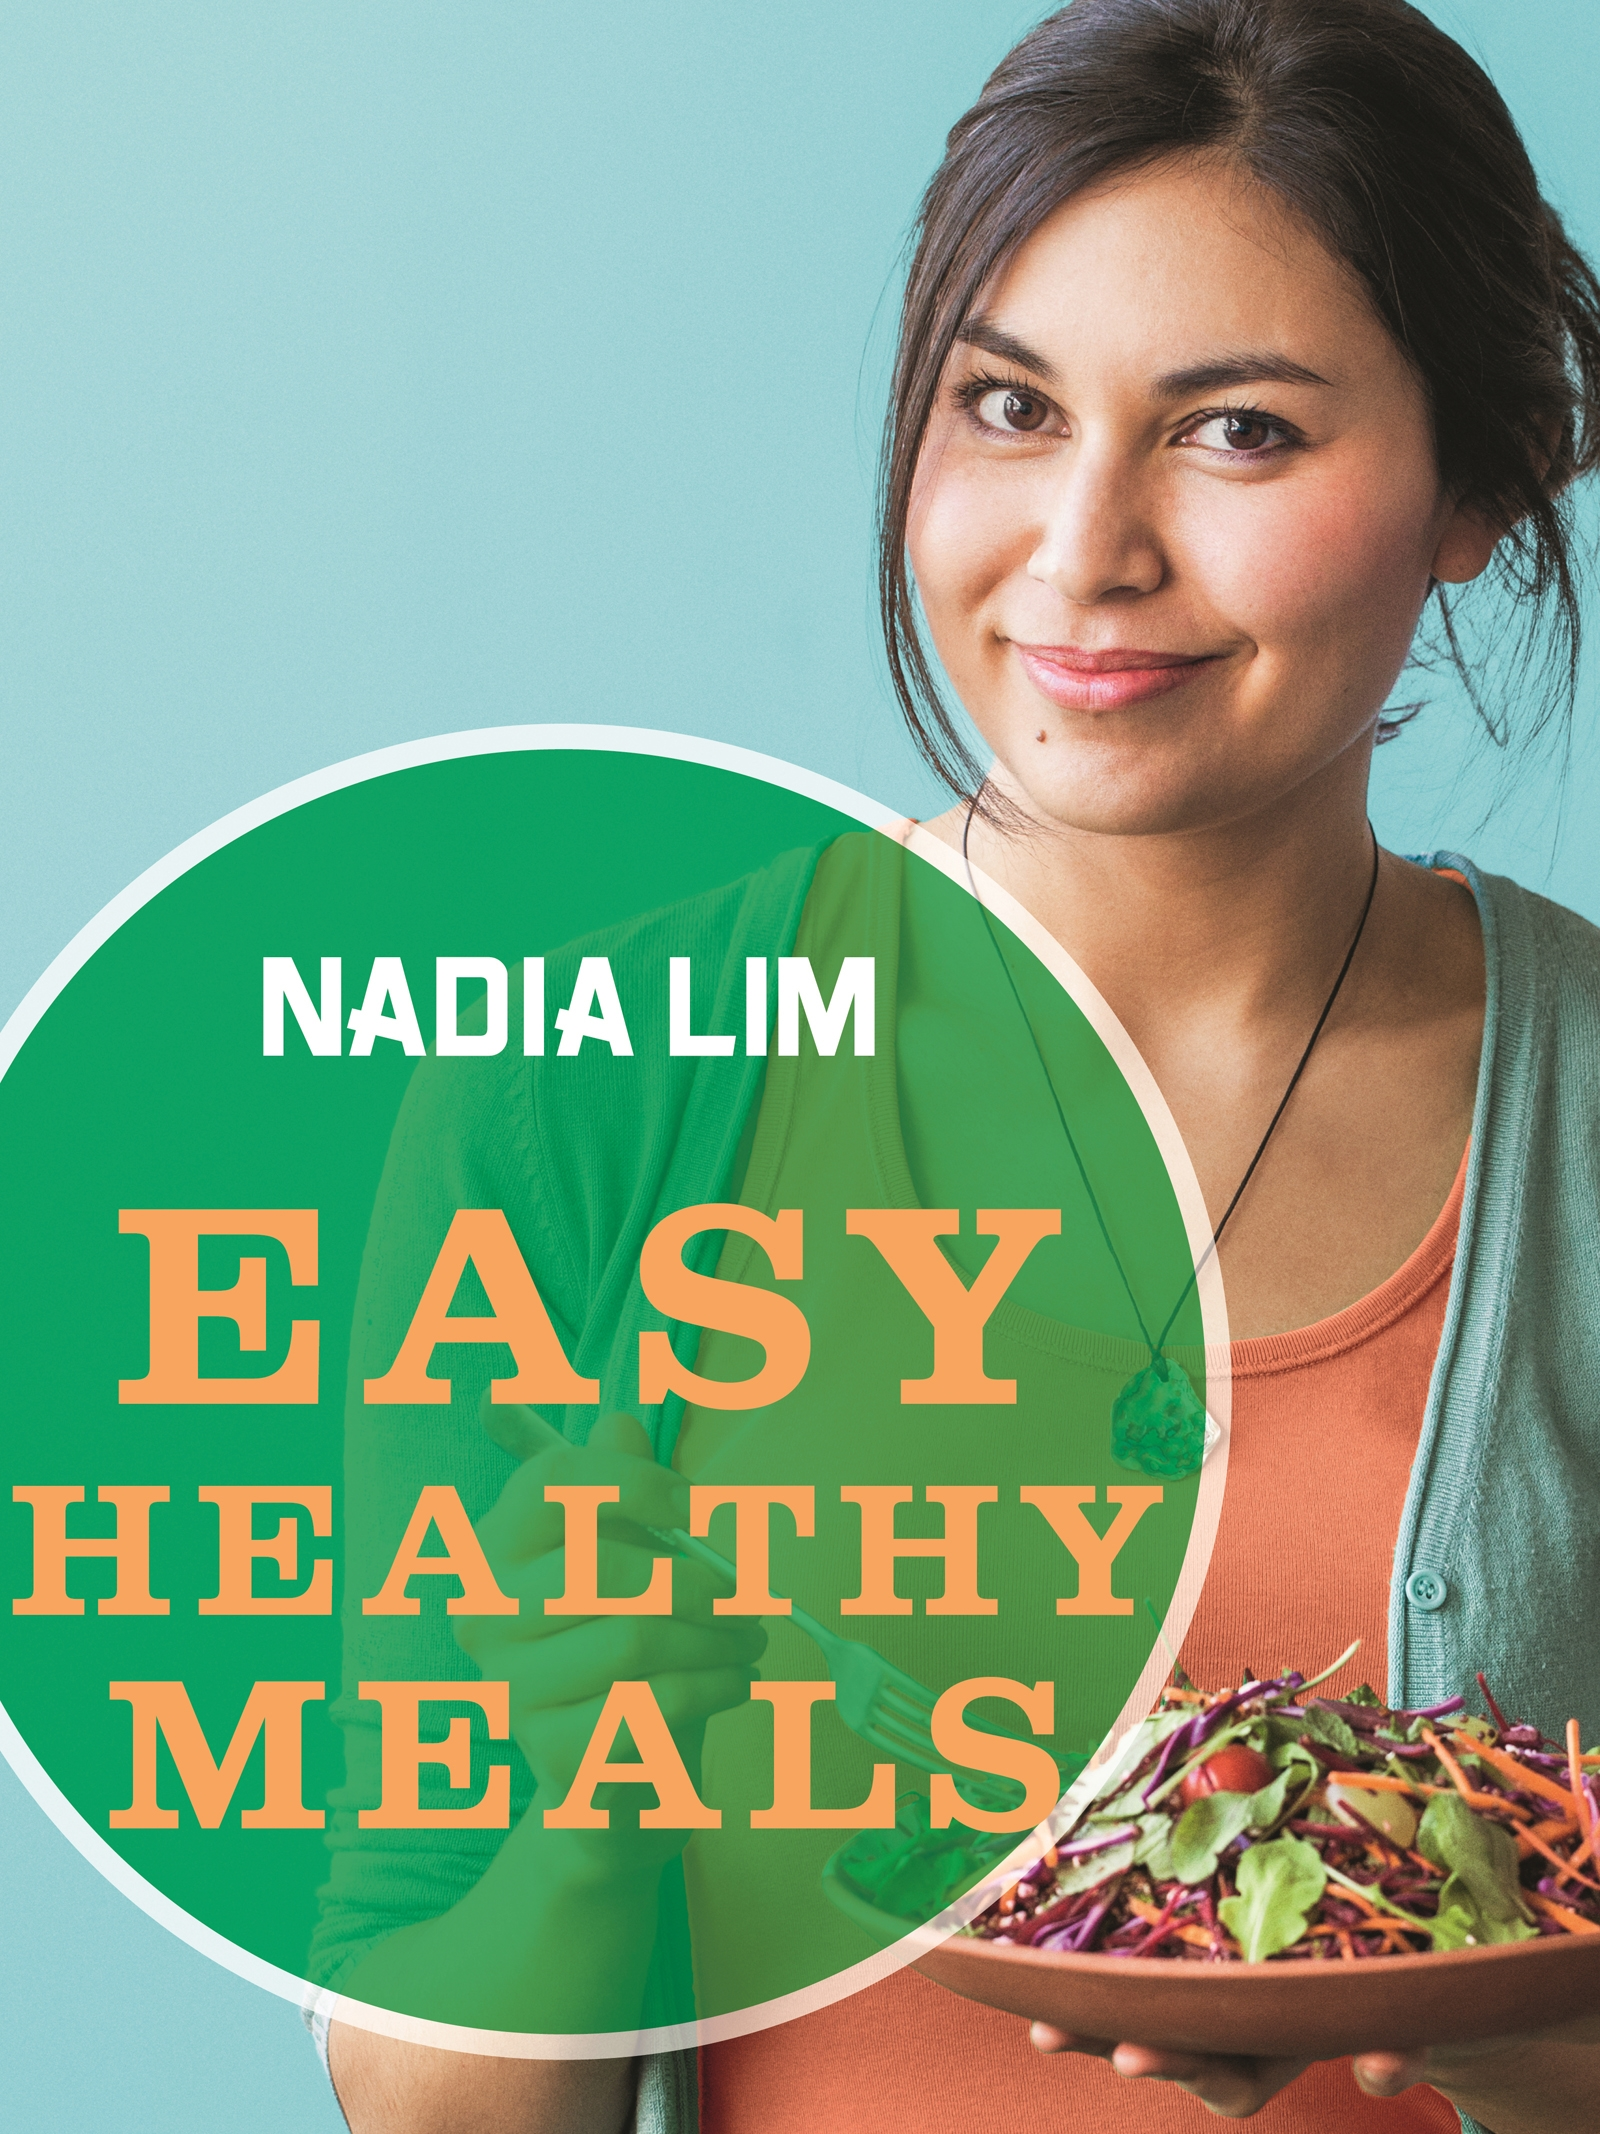 Easy healthy meals by nadia lim penguin books new zealand easy healthy meals by nadia lim forumfinder Images